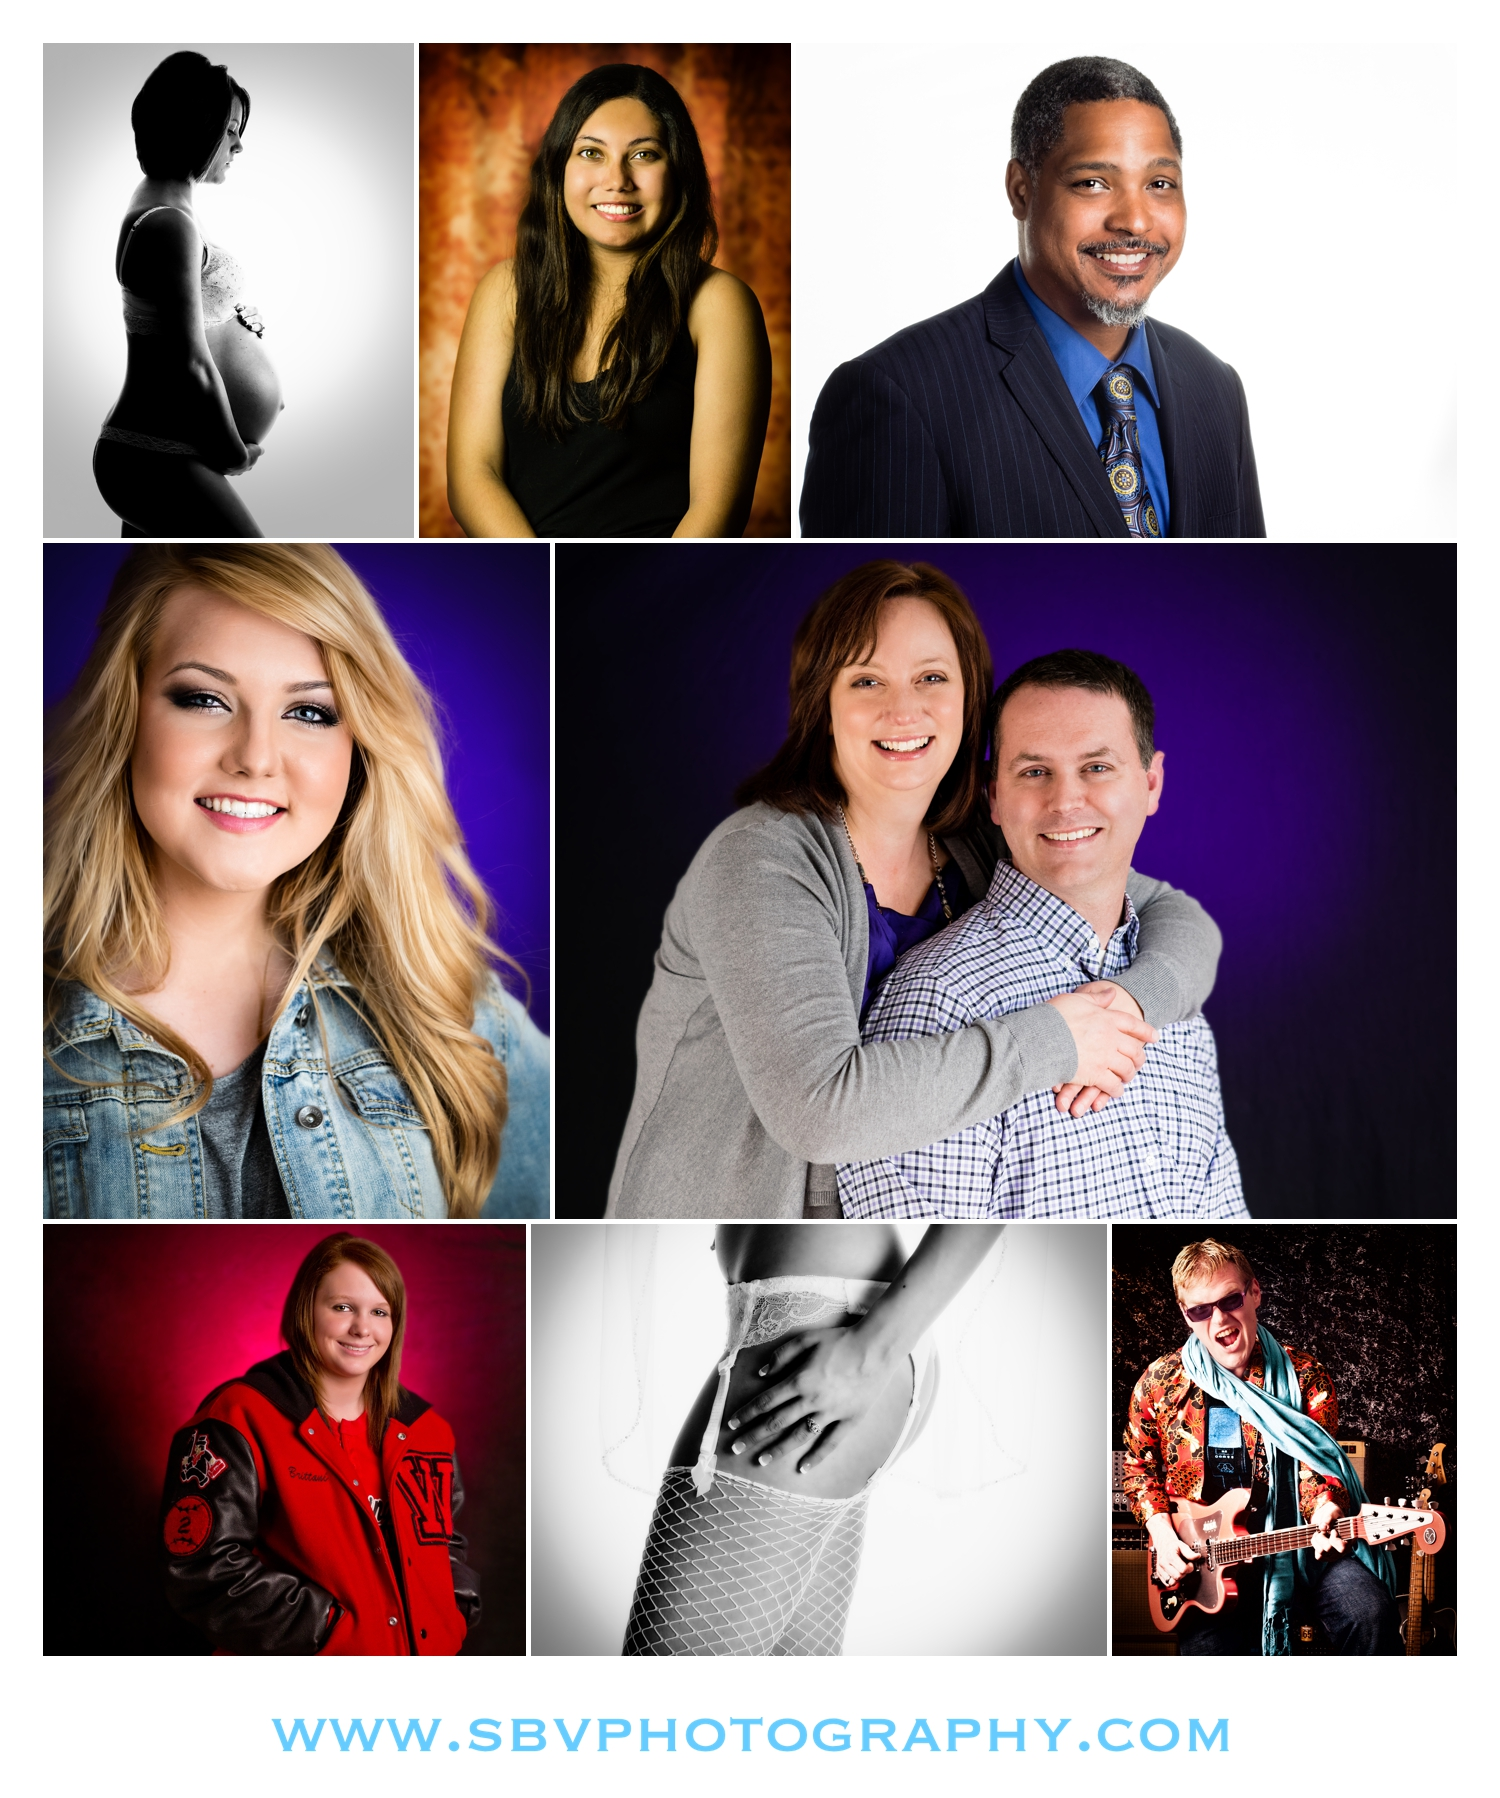 Studio photography in Crown Point, Indiana.